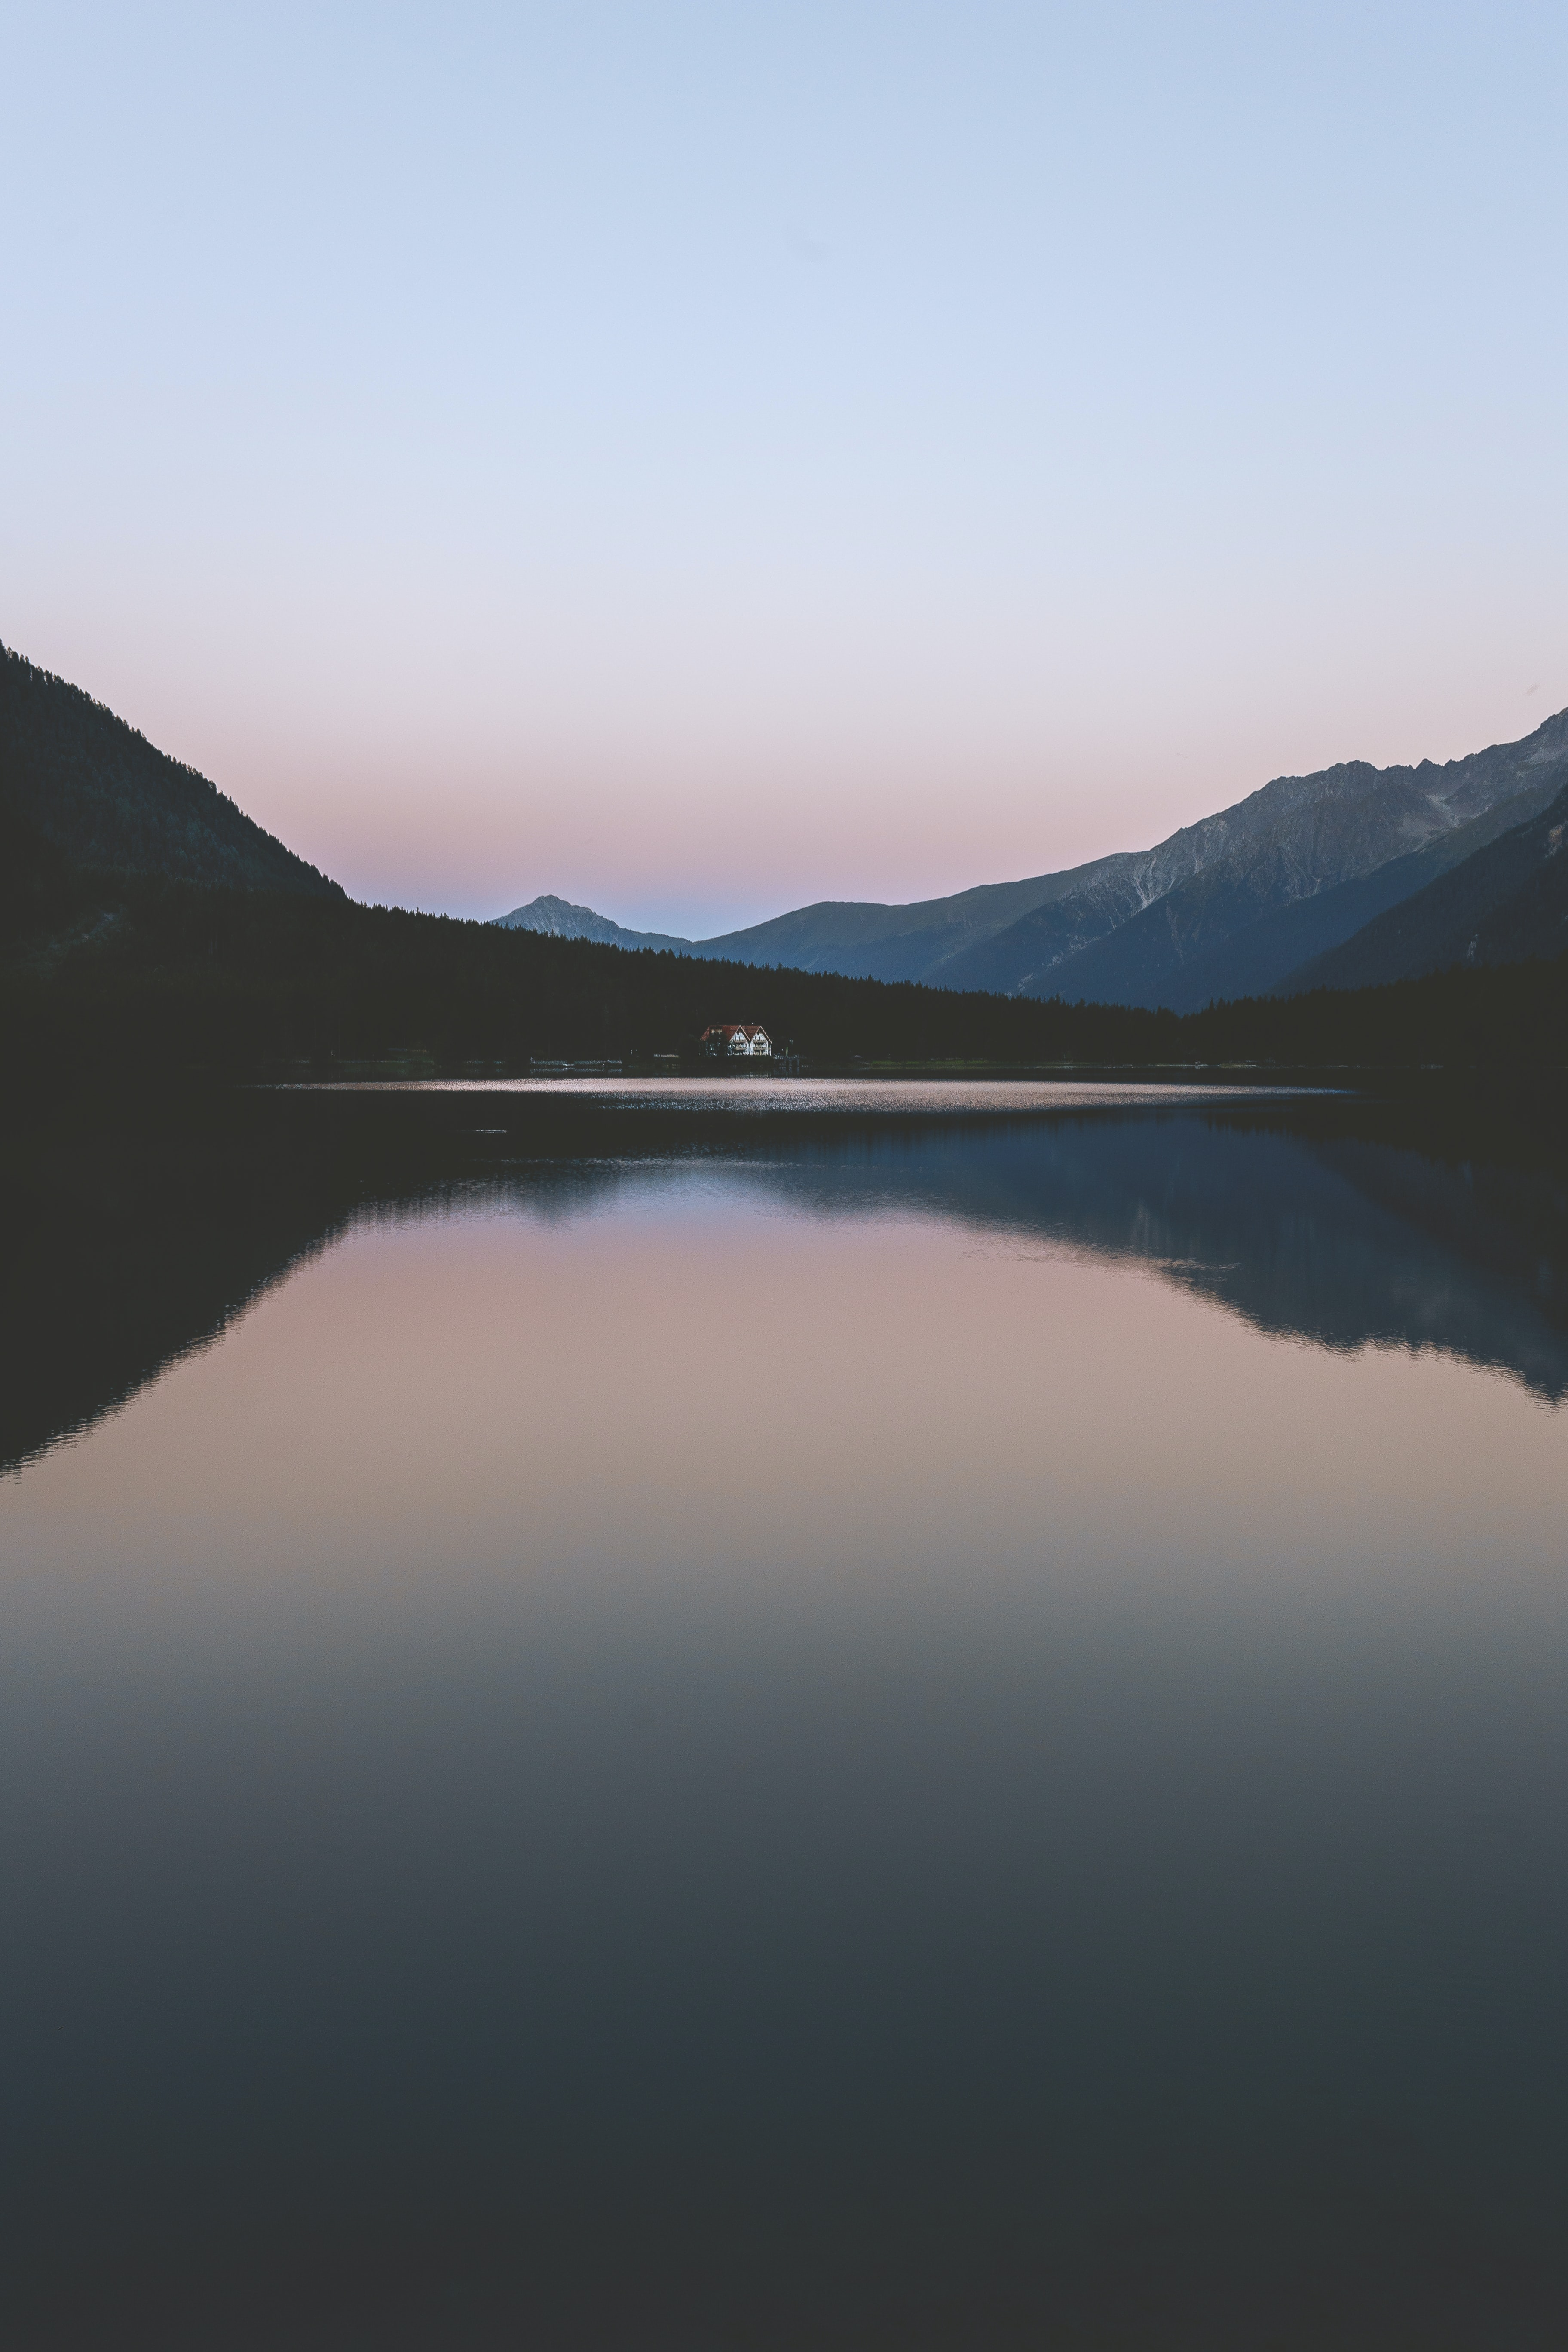 body of water in front of mountain